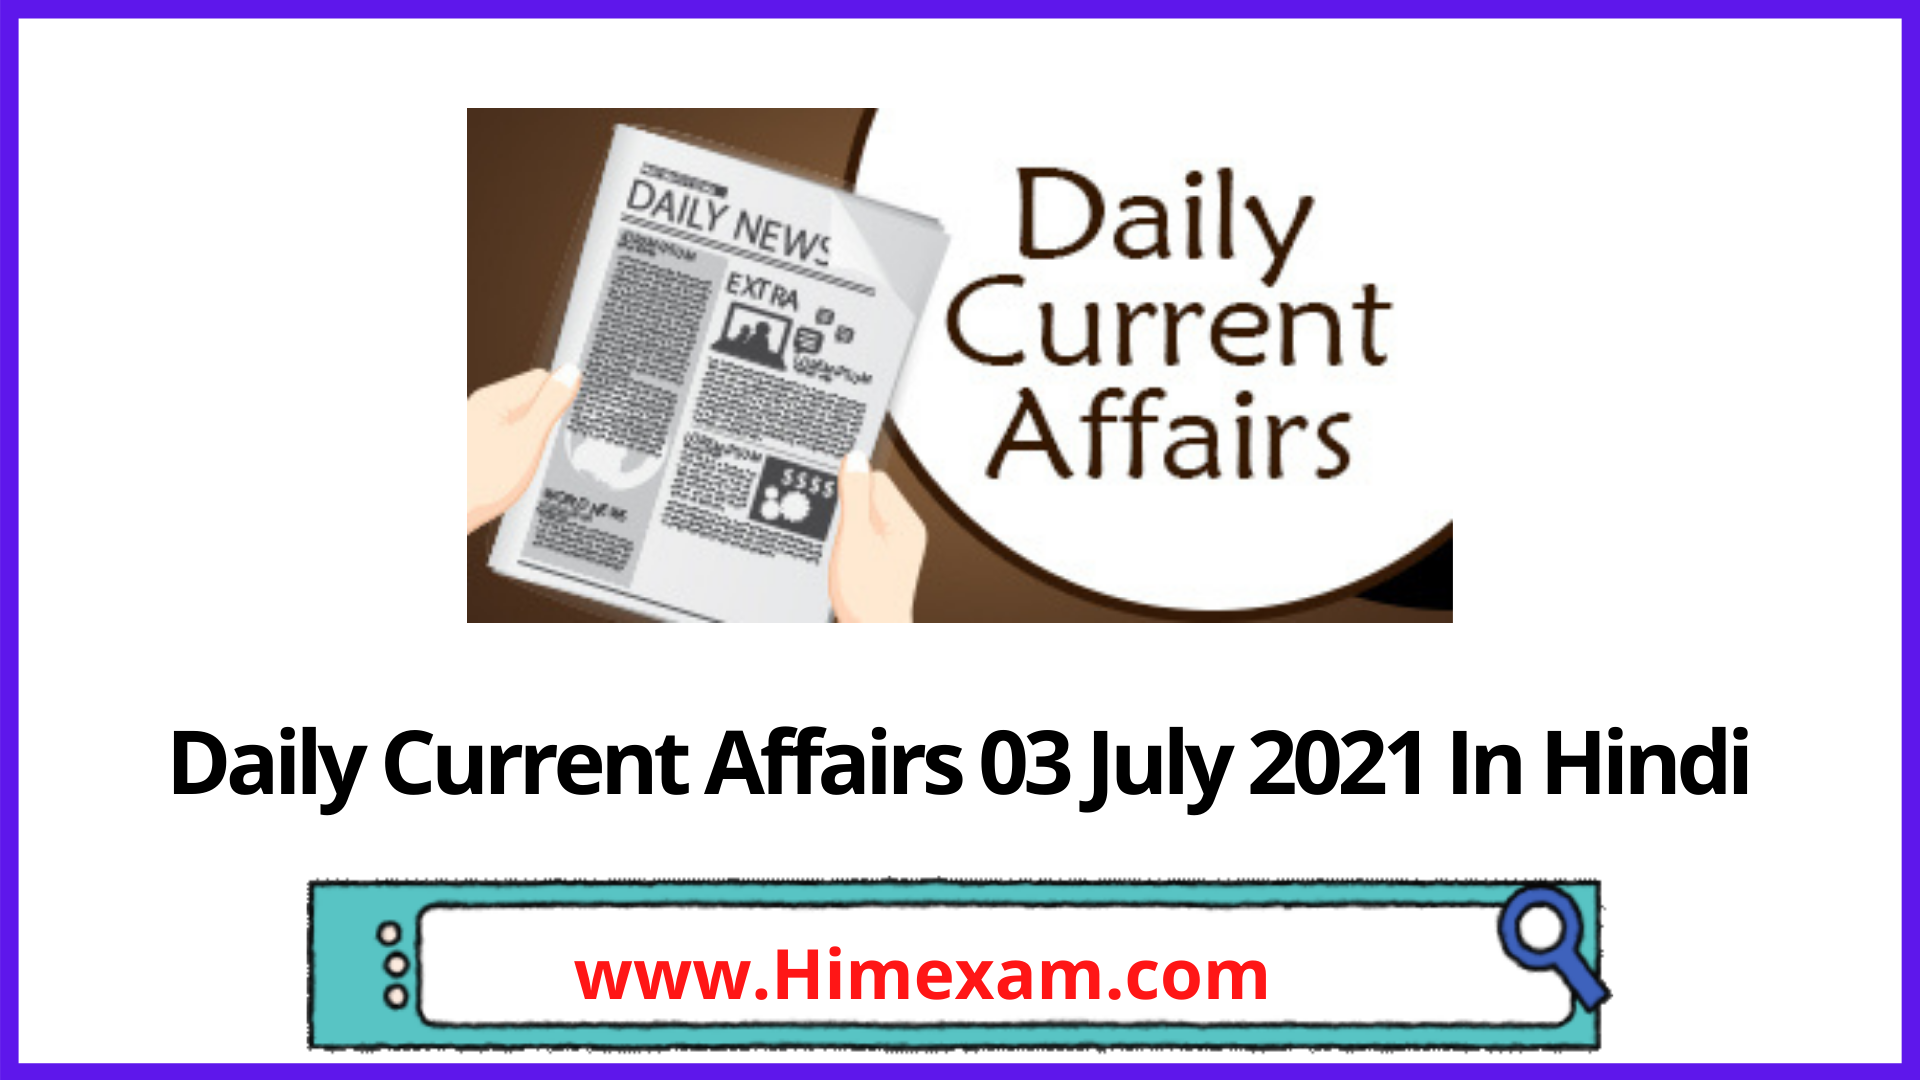 Daily Current Affairs 03 July 2021 In Hindi